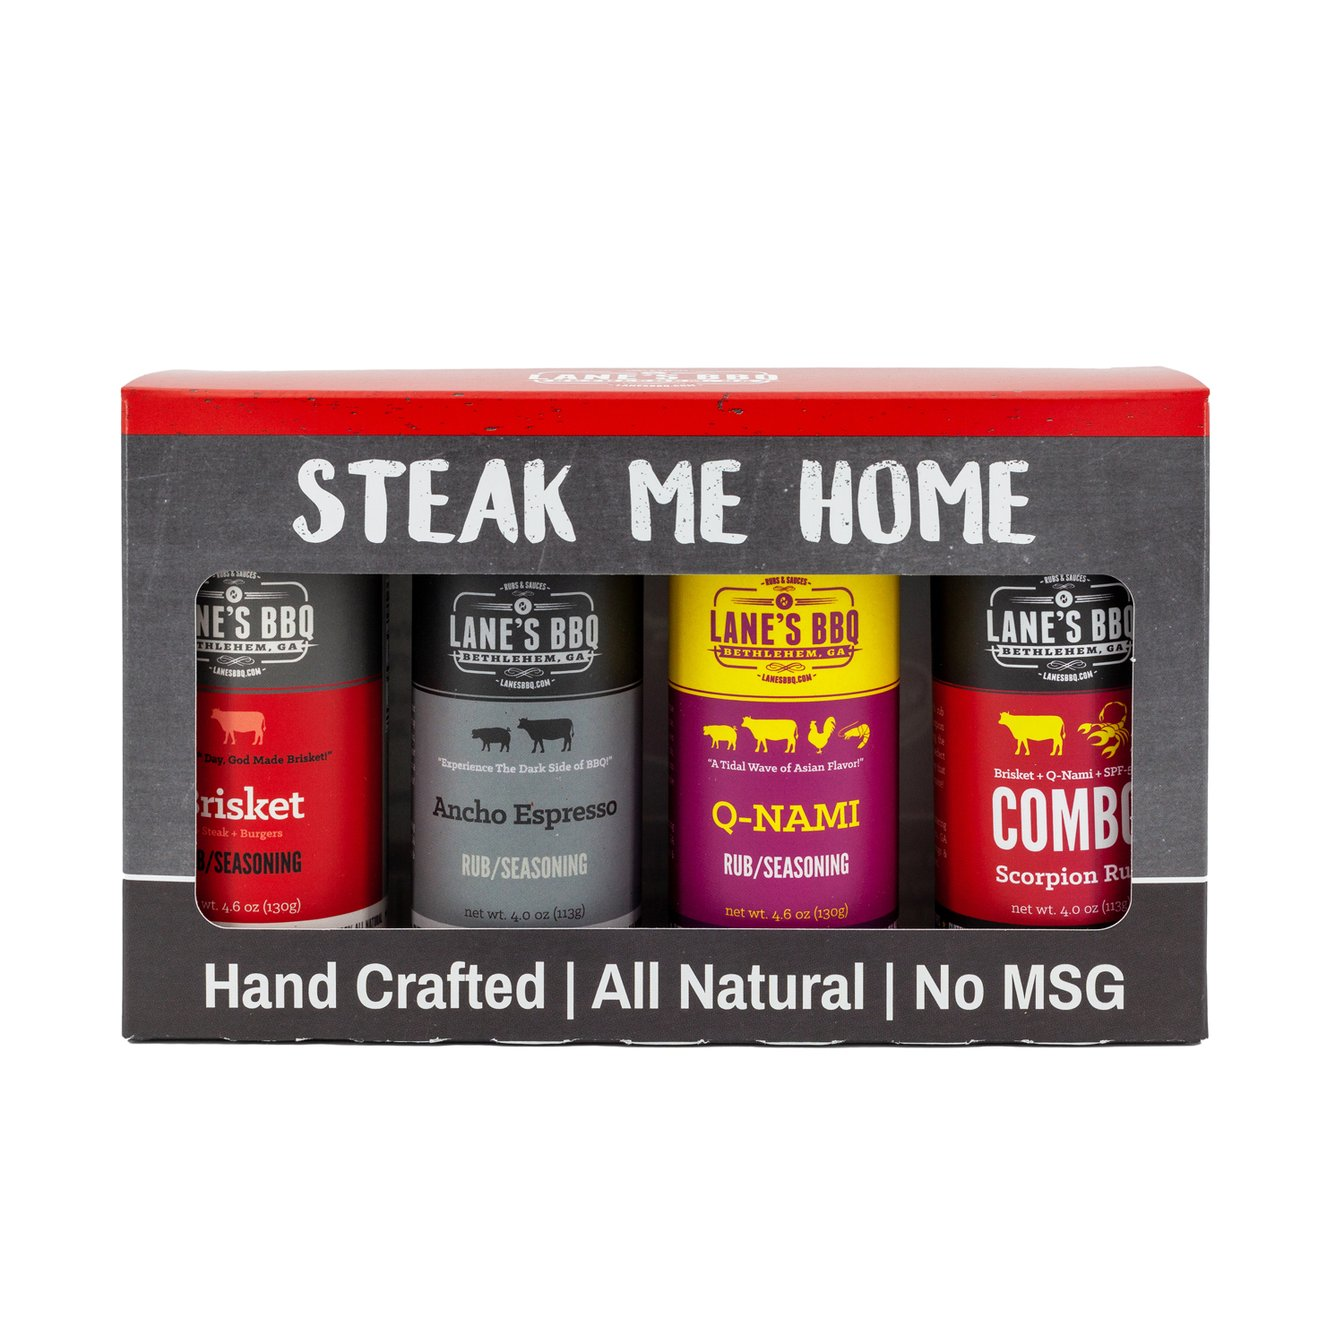 steak-me-home-front_1344x1344